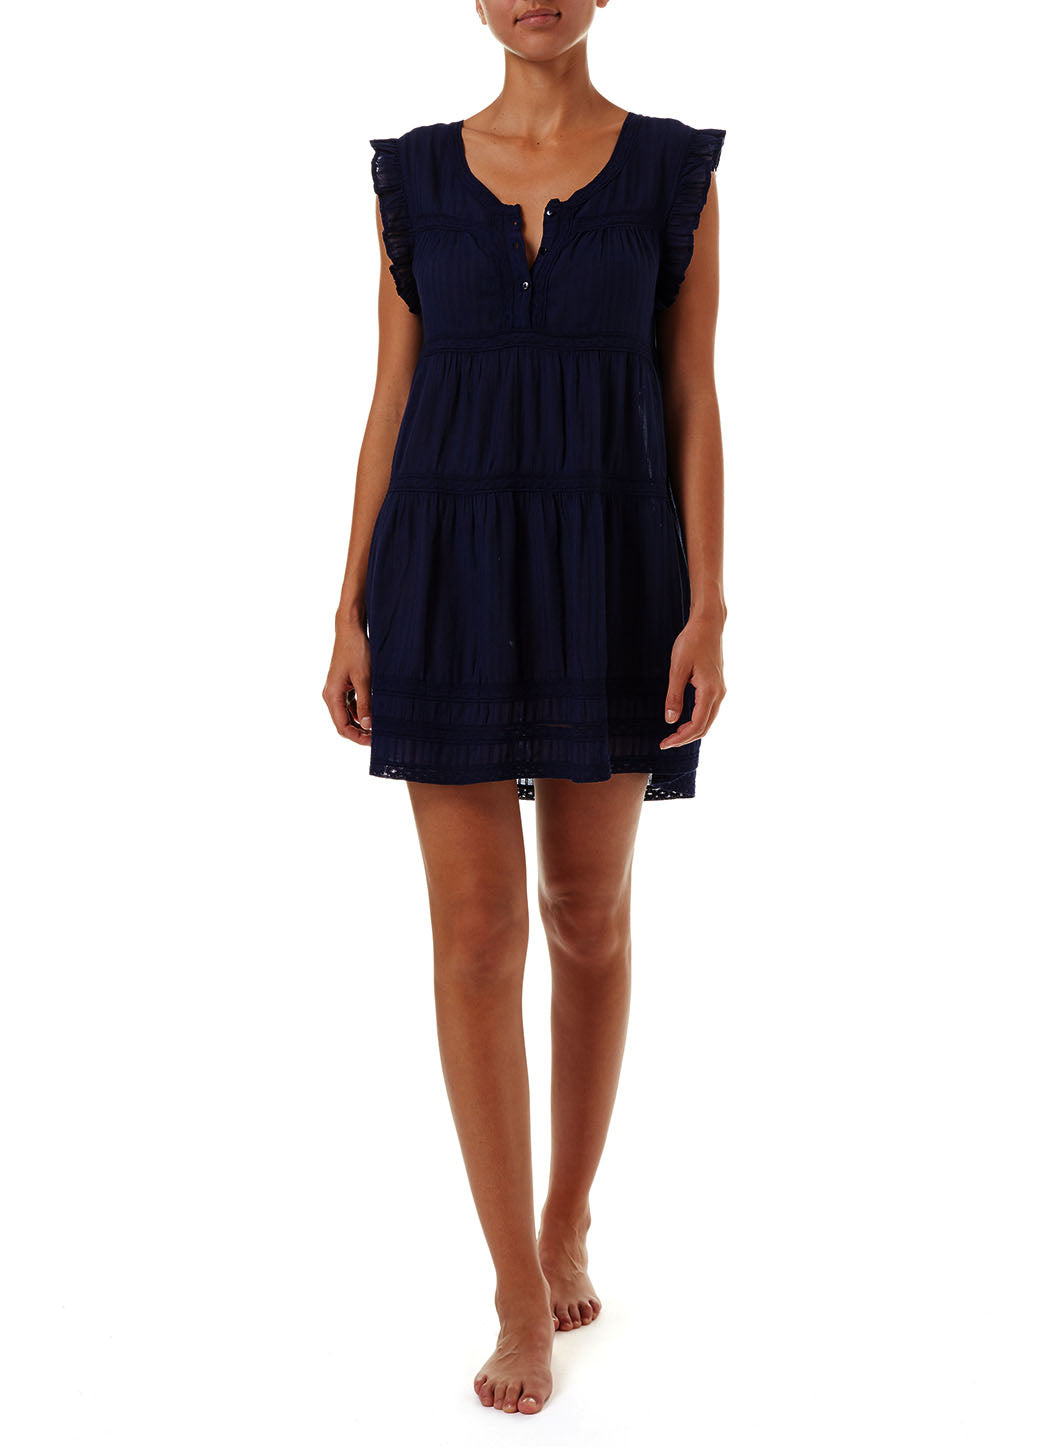 Rebekah Navy Button-Front Short Dress - Melissa Odabash Beachwear